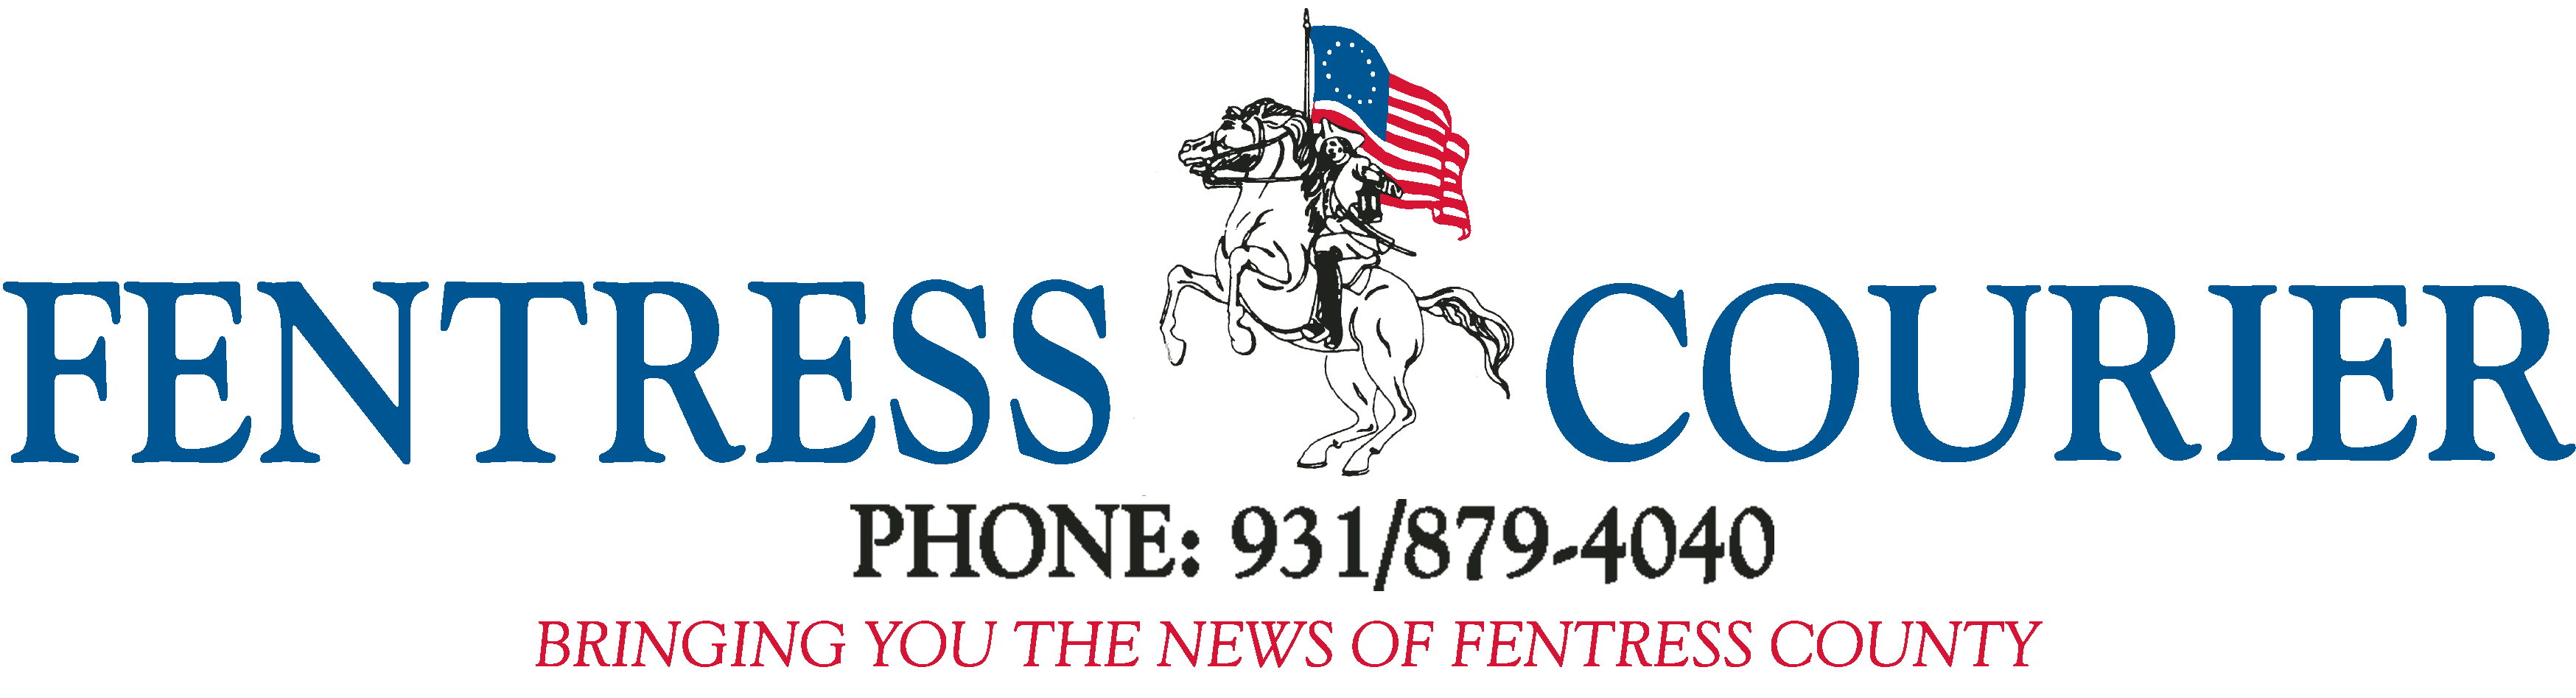 Fentress Courier